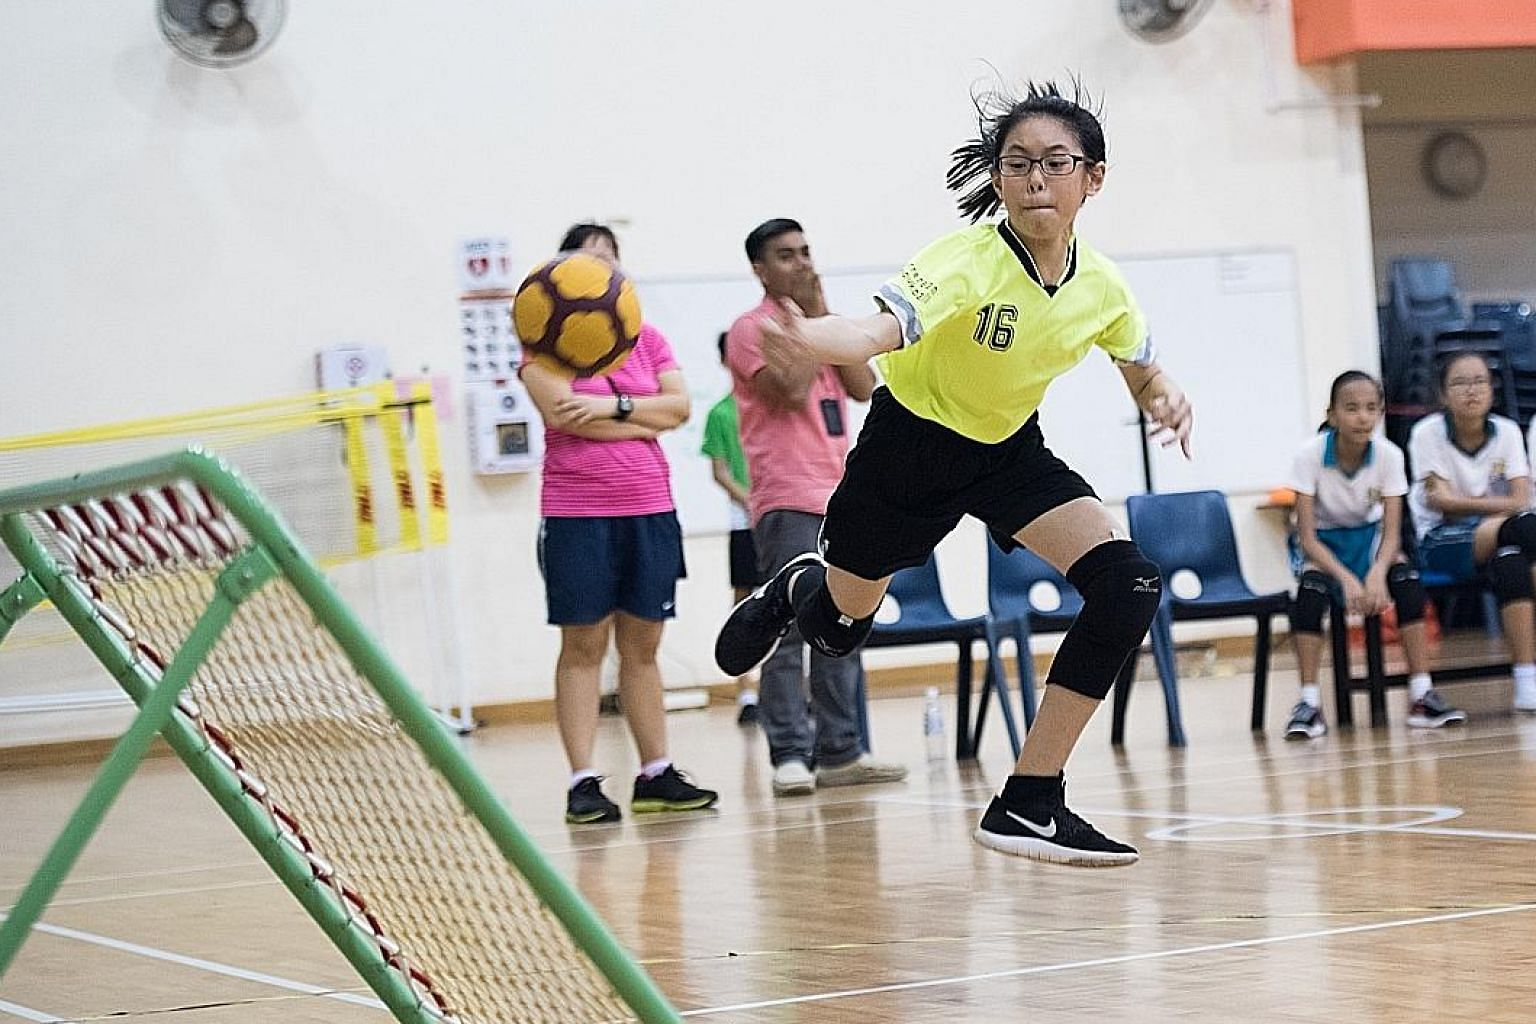 Farrer Park Primary's Yau Le Yi, despite a foot injury, led her team to a 12-7 victory over East Coast Primary in the SPH Foundation National Primary Schools Tchoukball Championships final yesterday.